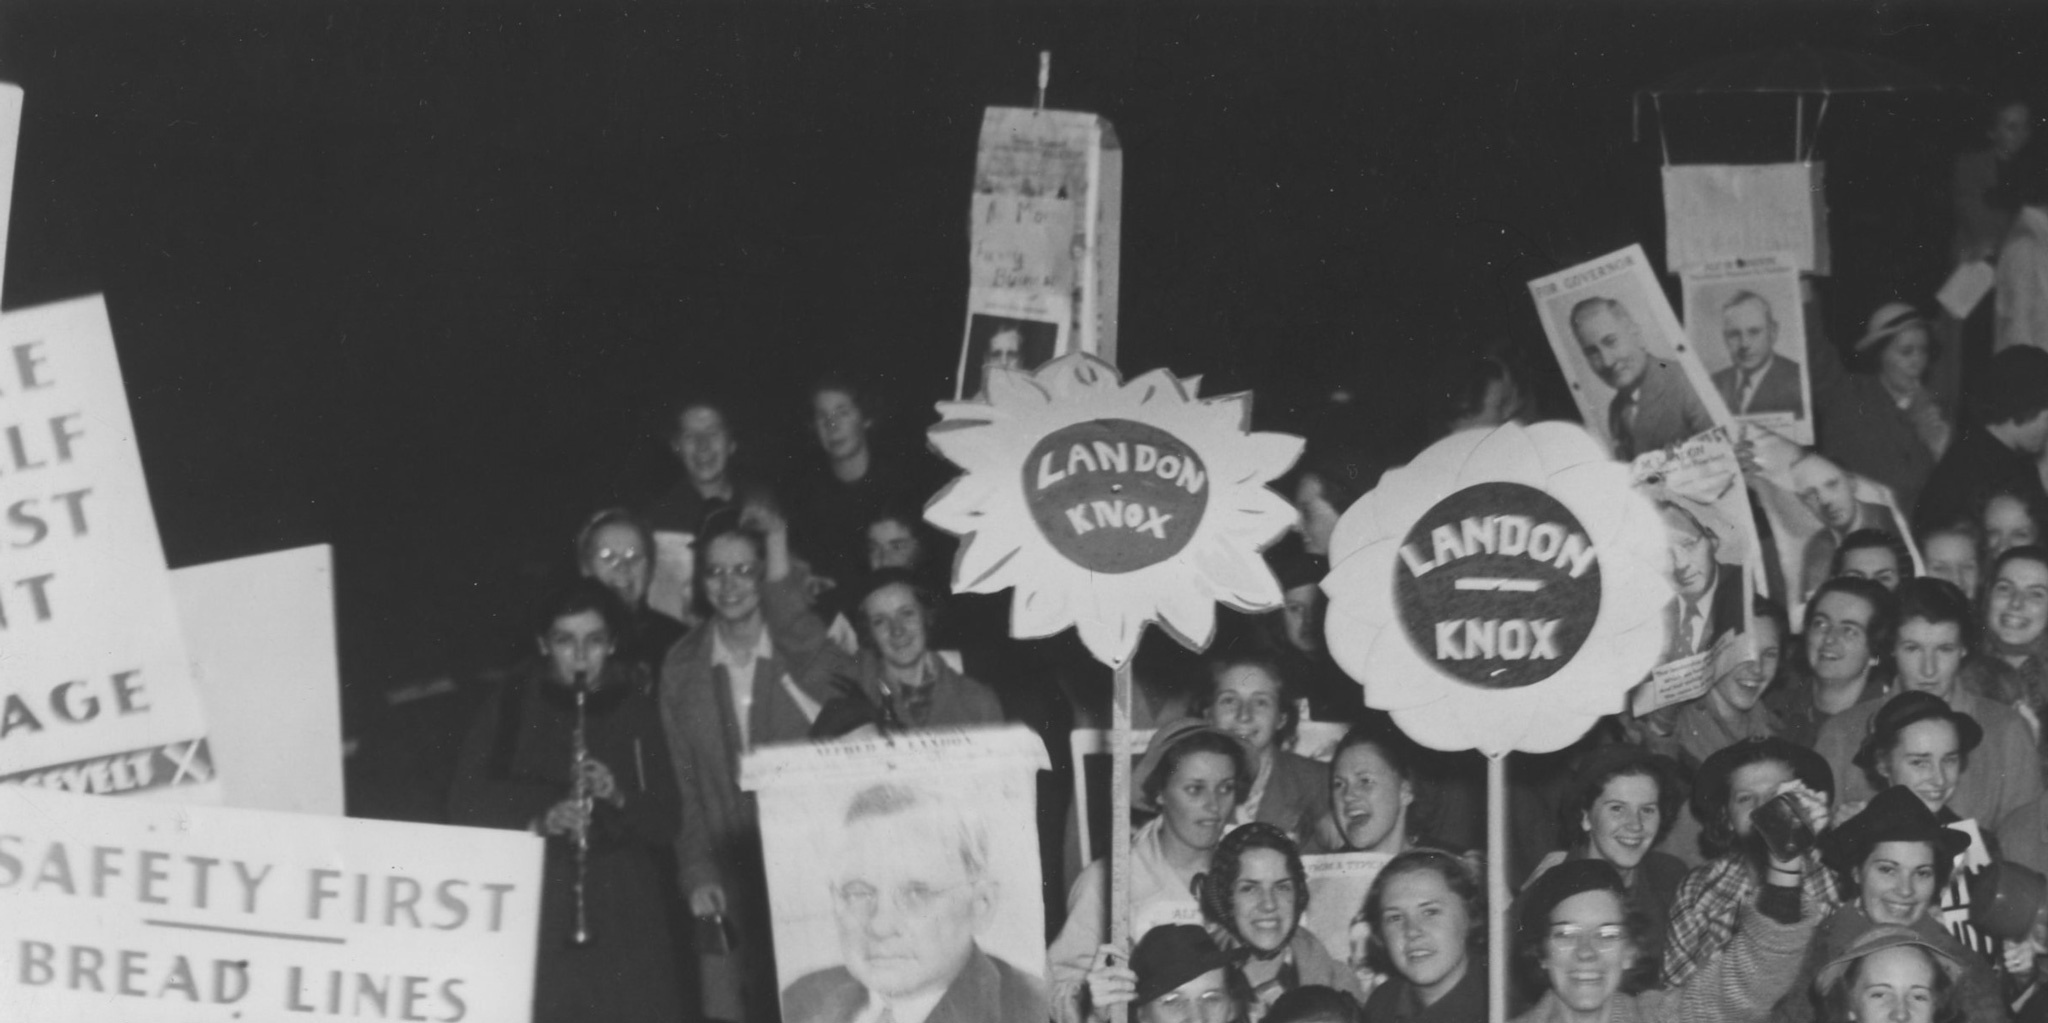 A black and white photo of a crowd of people standing holding signs in support of 1936 presidential candidates.